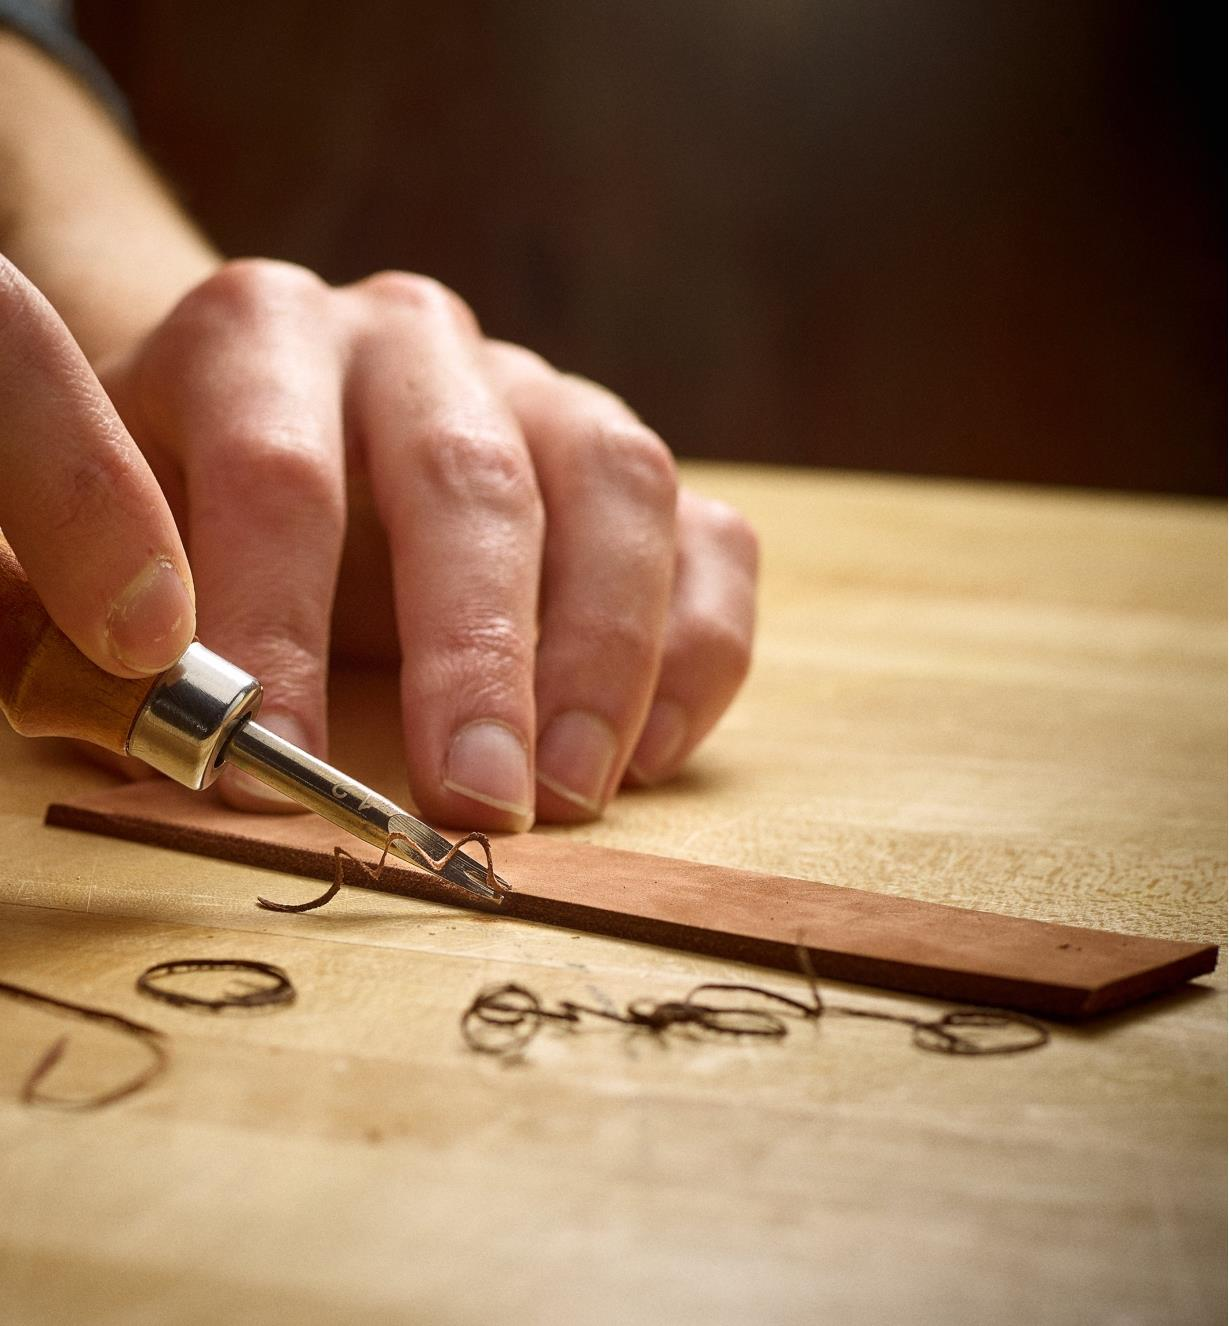 Using an edging tool to cut a radiused profile on a small piece of leather